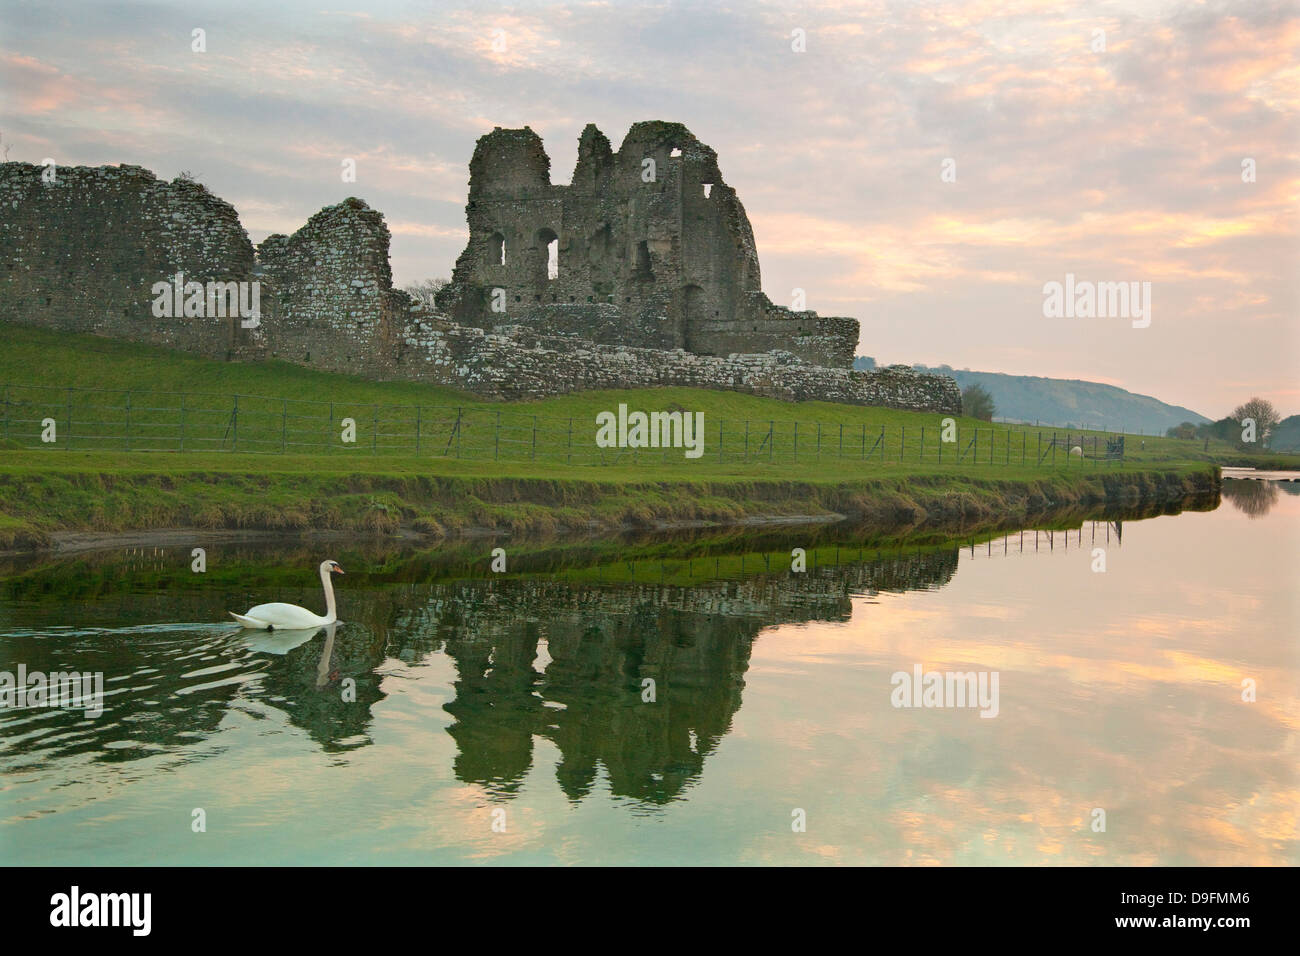 Ogmore Castle, Bridgend, Glamorgan, Wales, UK - Stock Image